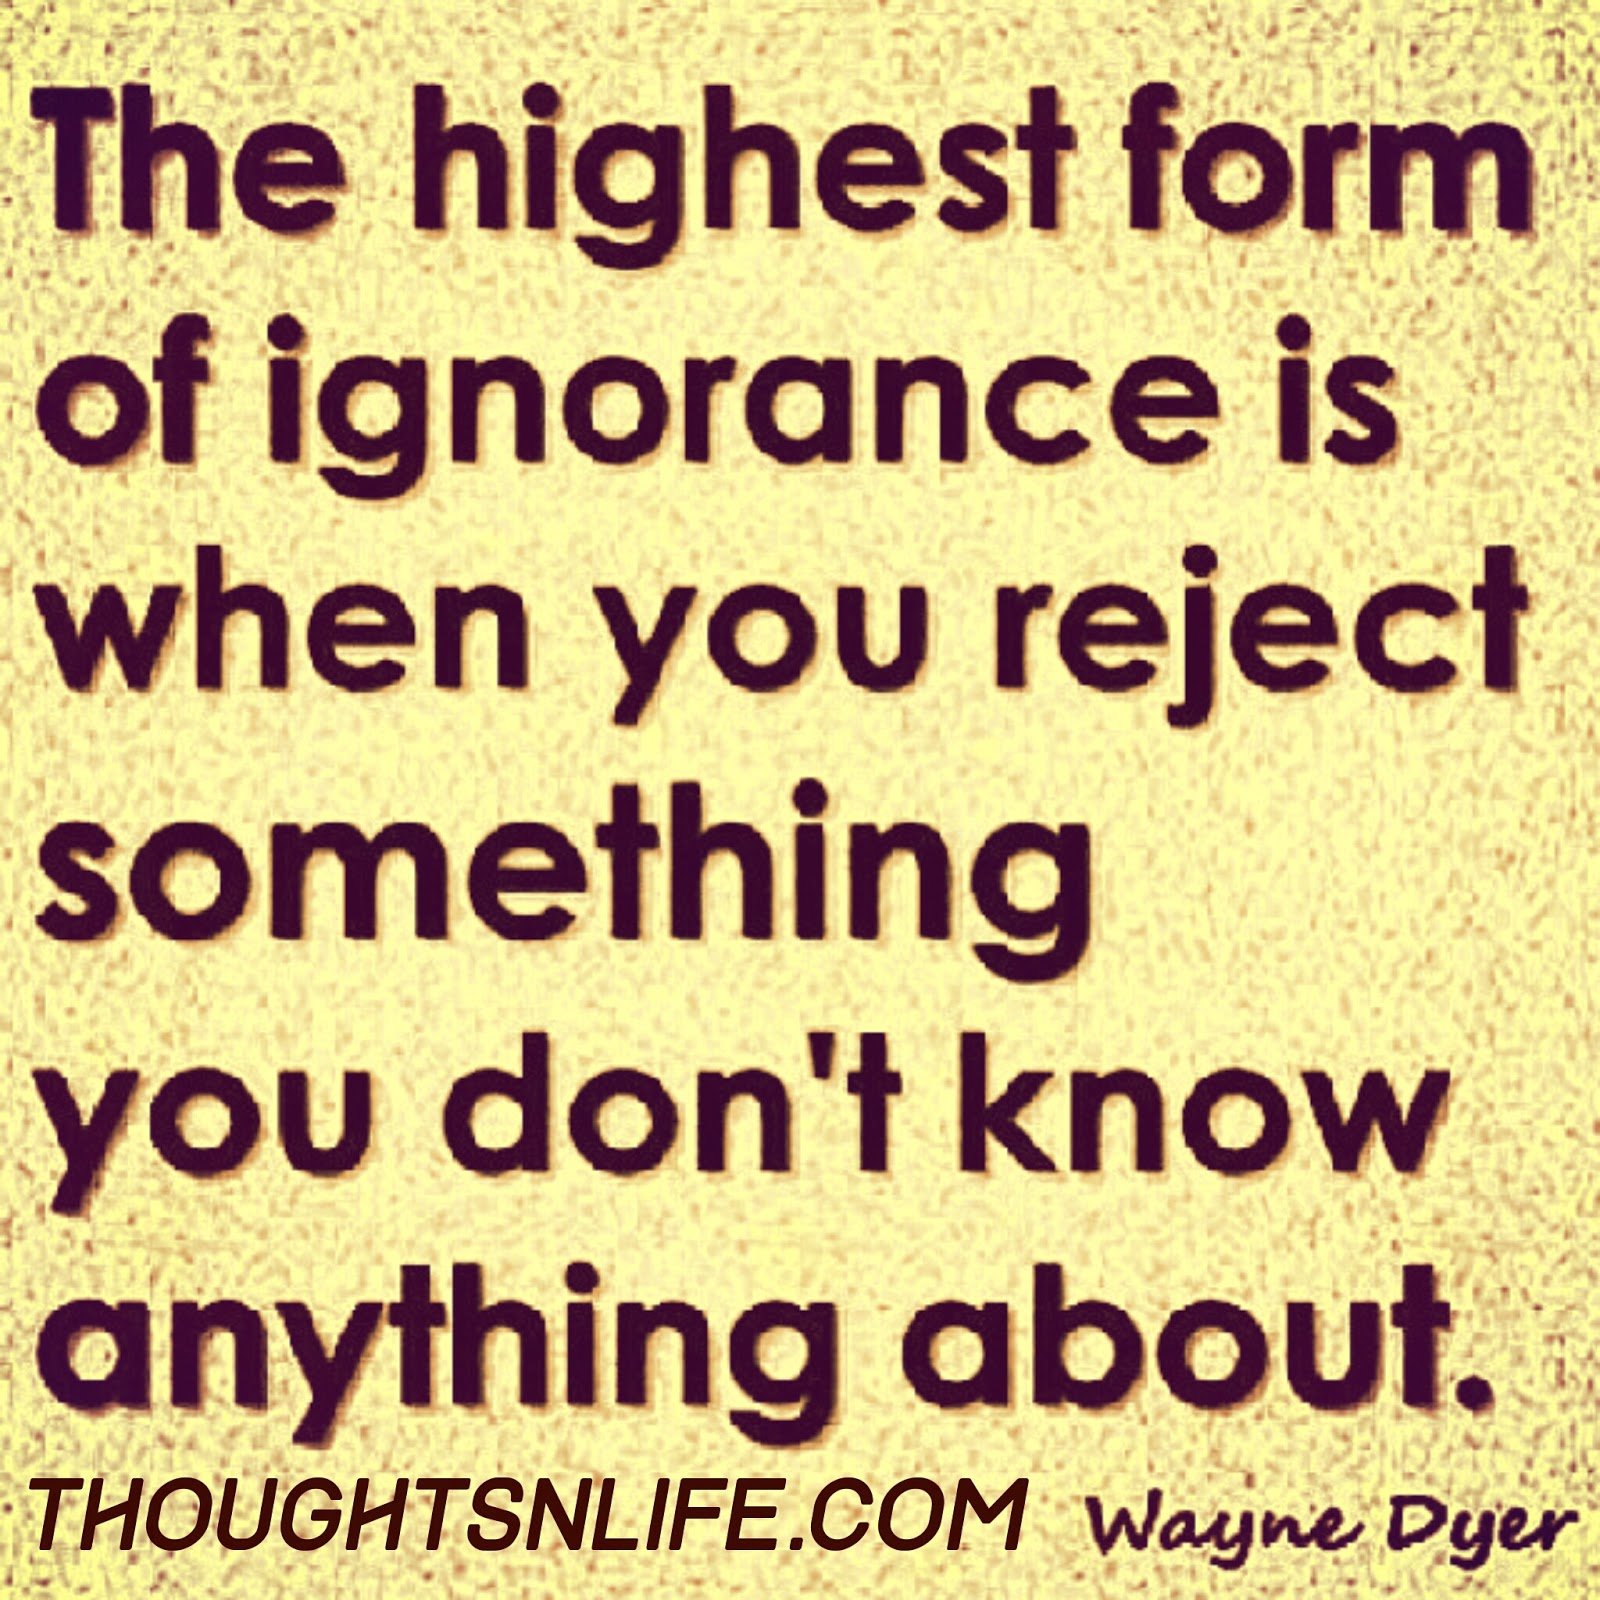 thoughtsnlife, wayne dyer quotes ,wayne dyer quotes ignorance